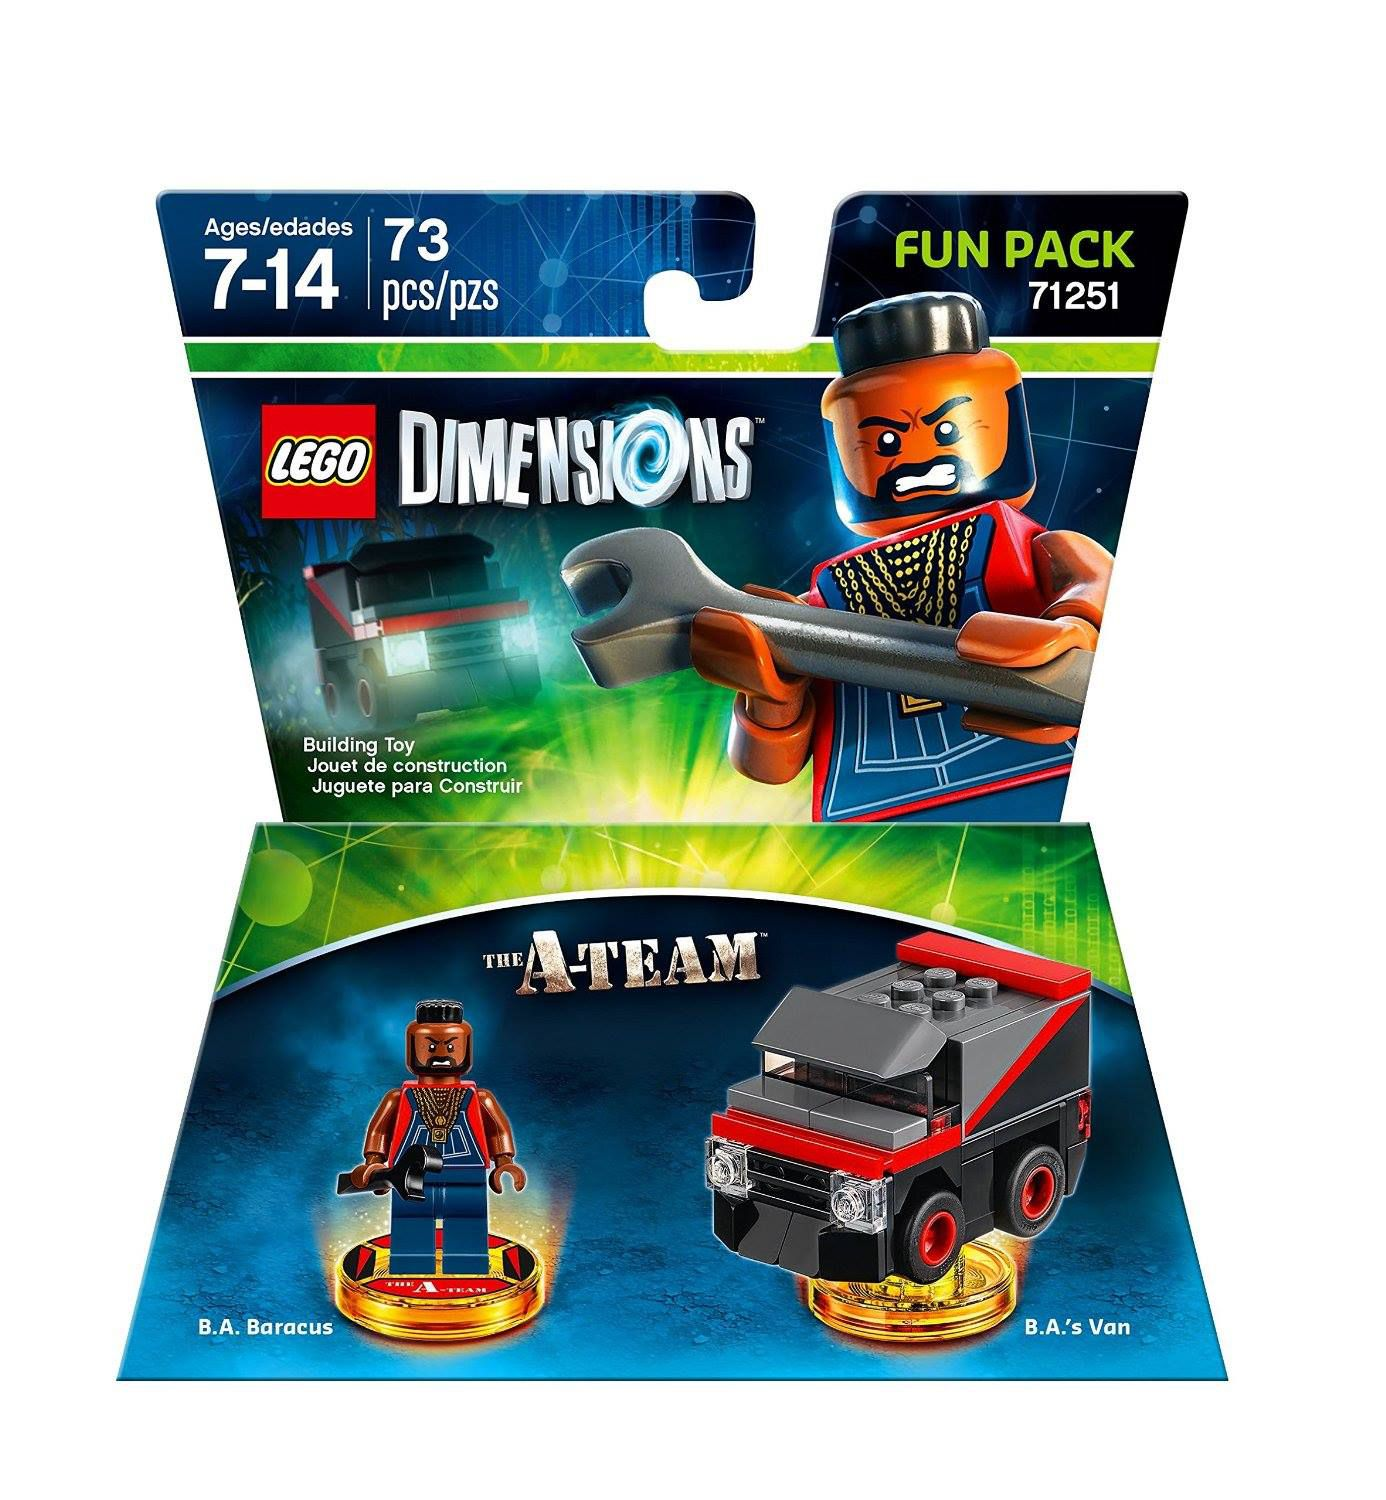 LEGO Dimensions 71251 Fun Pack A-Team LEGO_DIMENSIONS_71251_A-Team-04.jpg